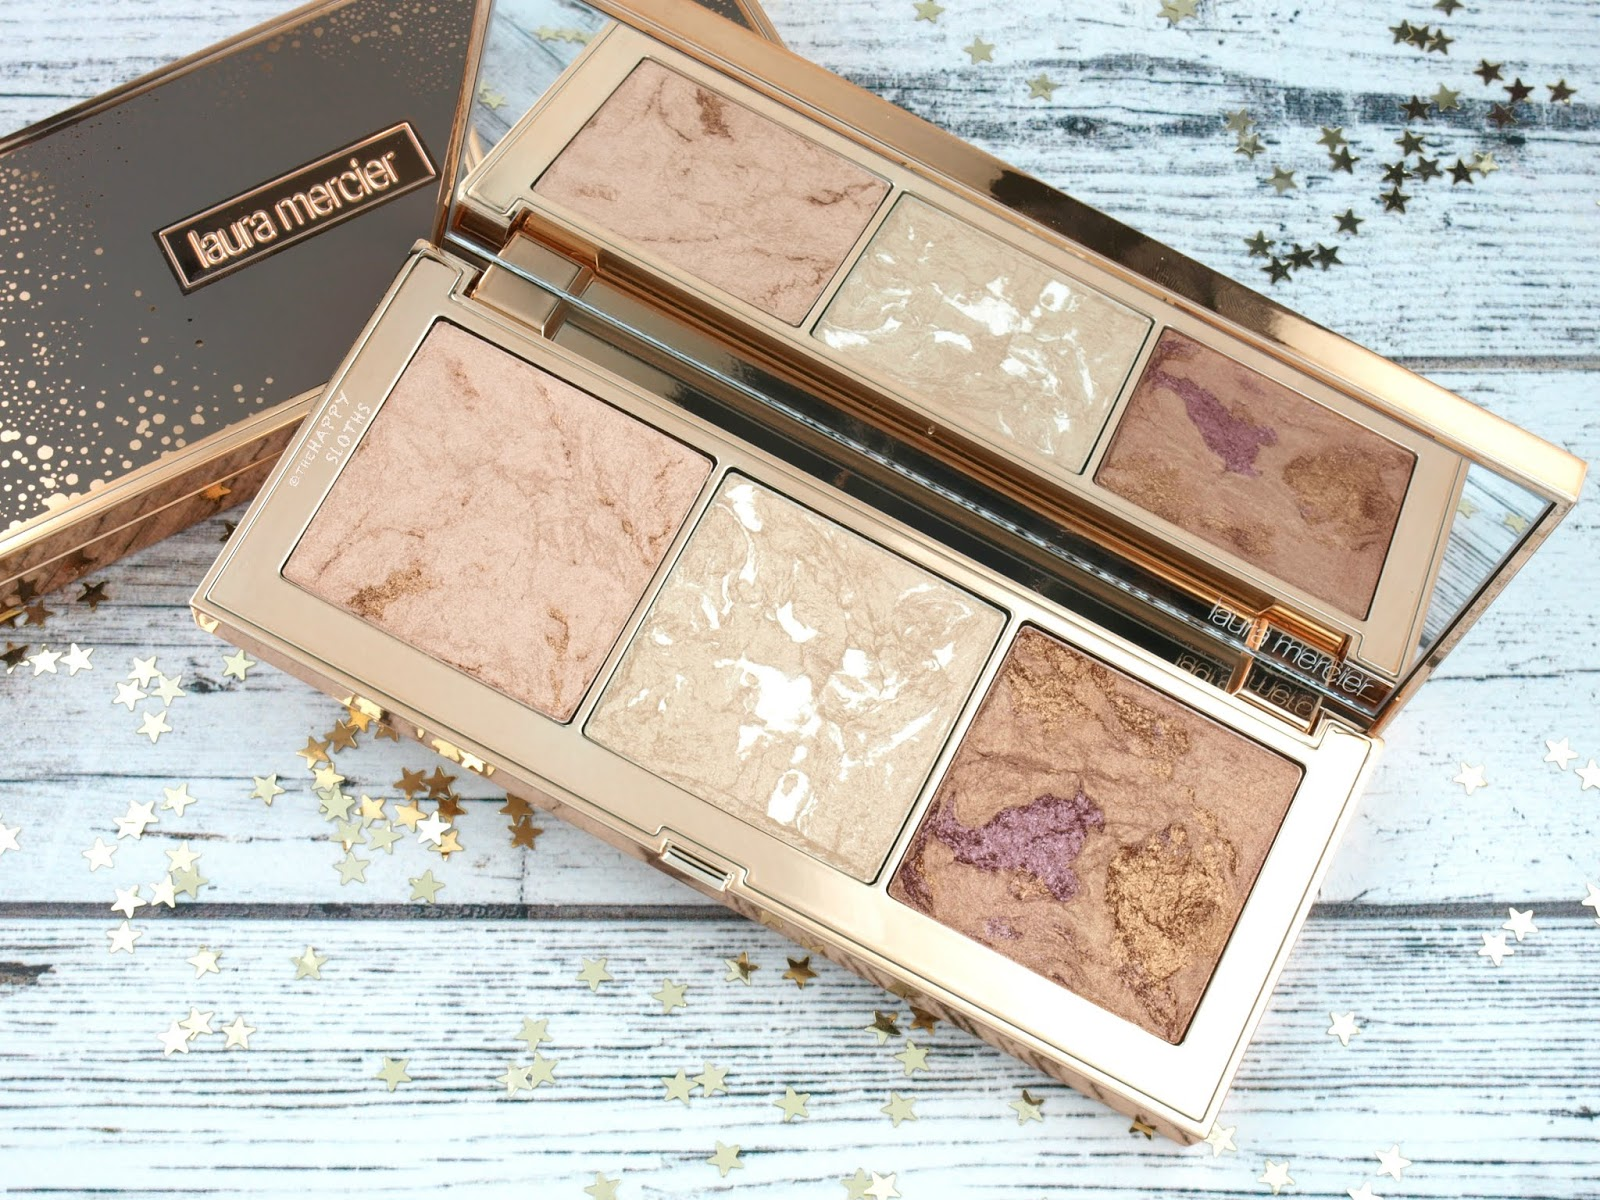 Laura Mercier | Holiday 2018 Stardust Radiant Glow Palette: Review and Swatches